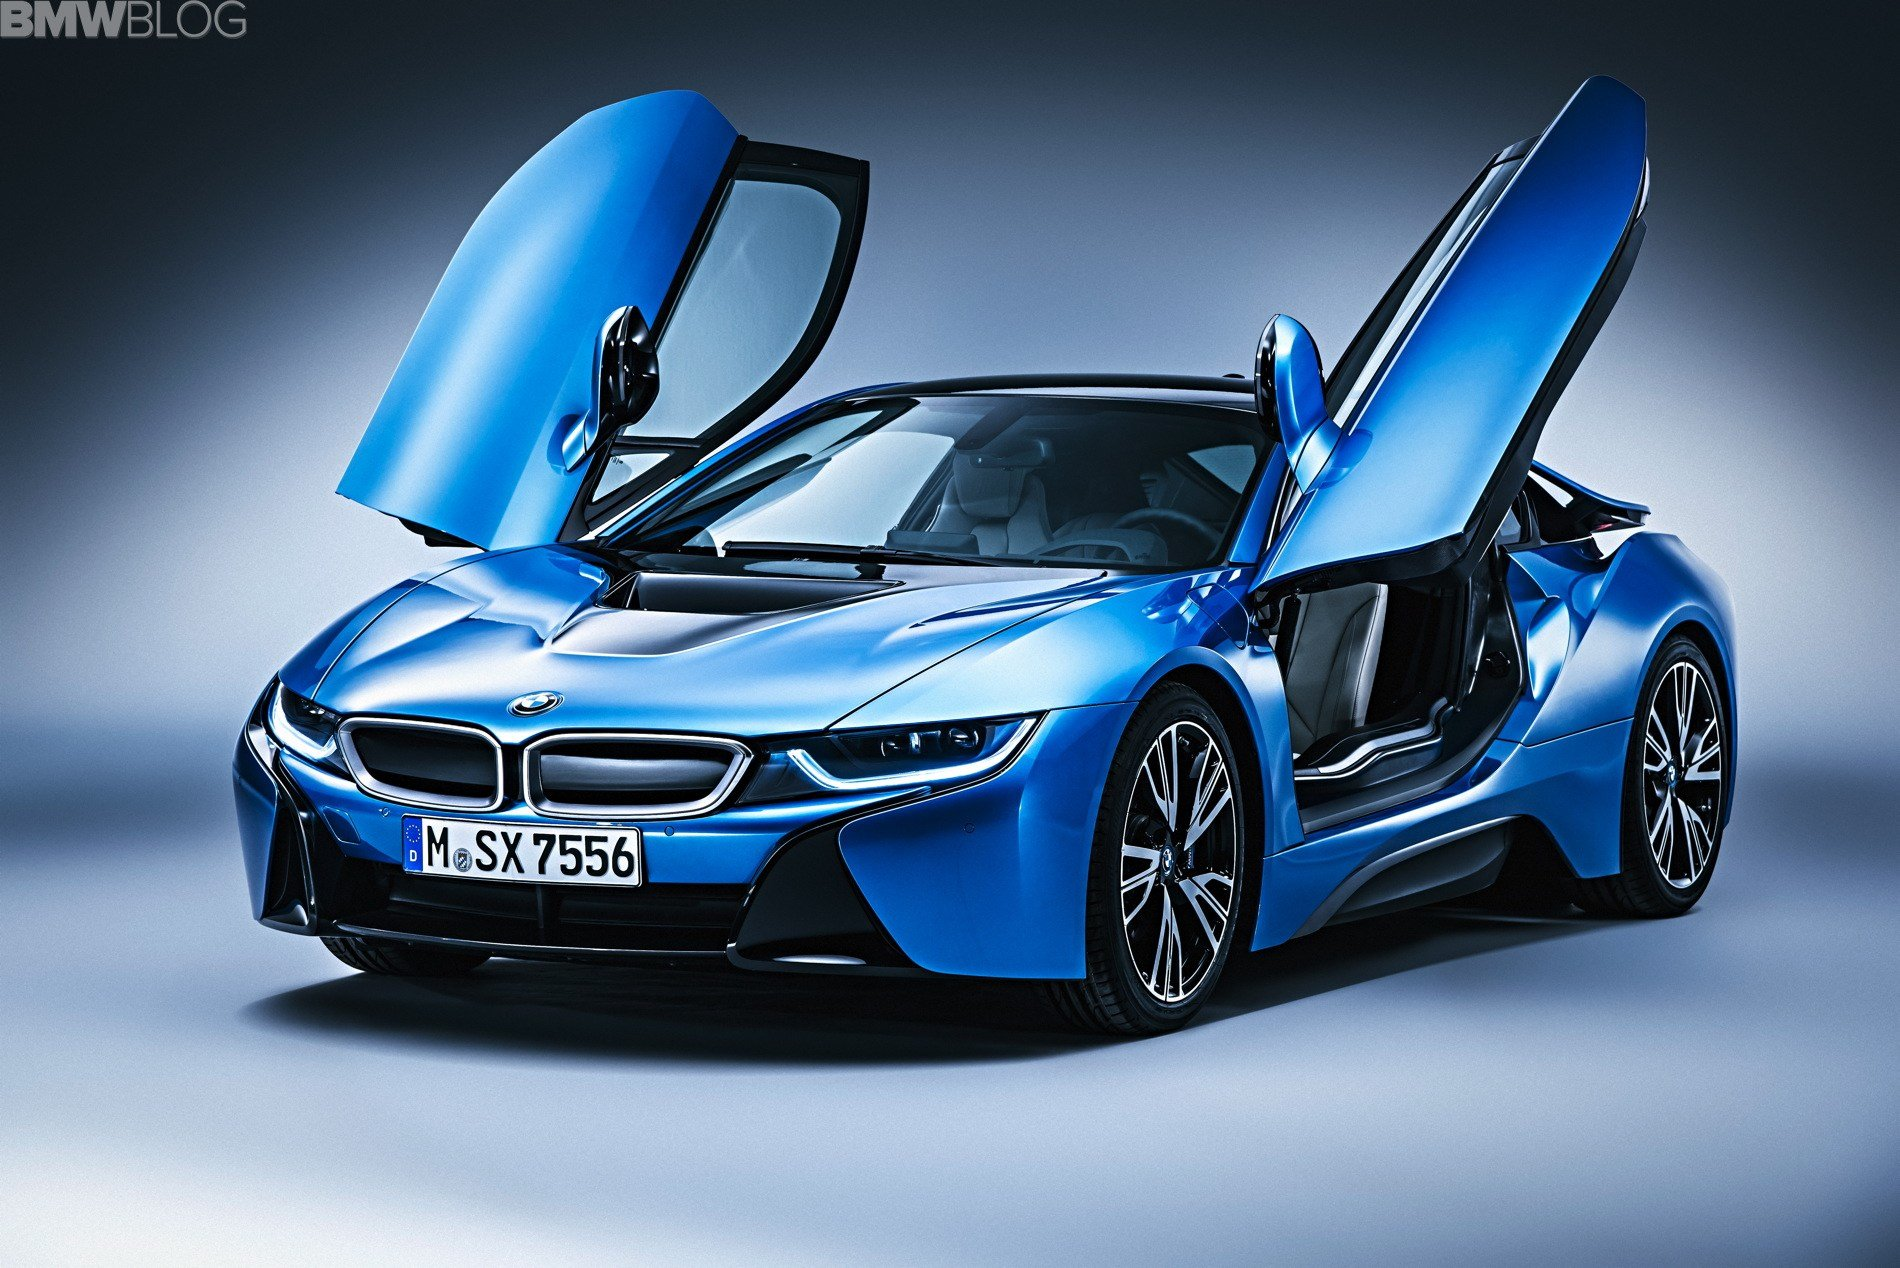 Latest Bmw I8 Image King Free Download